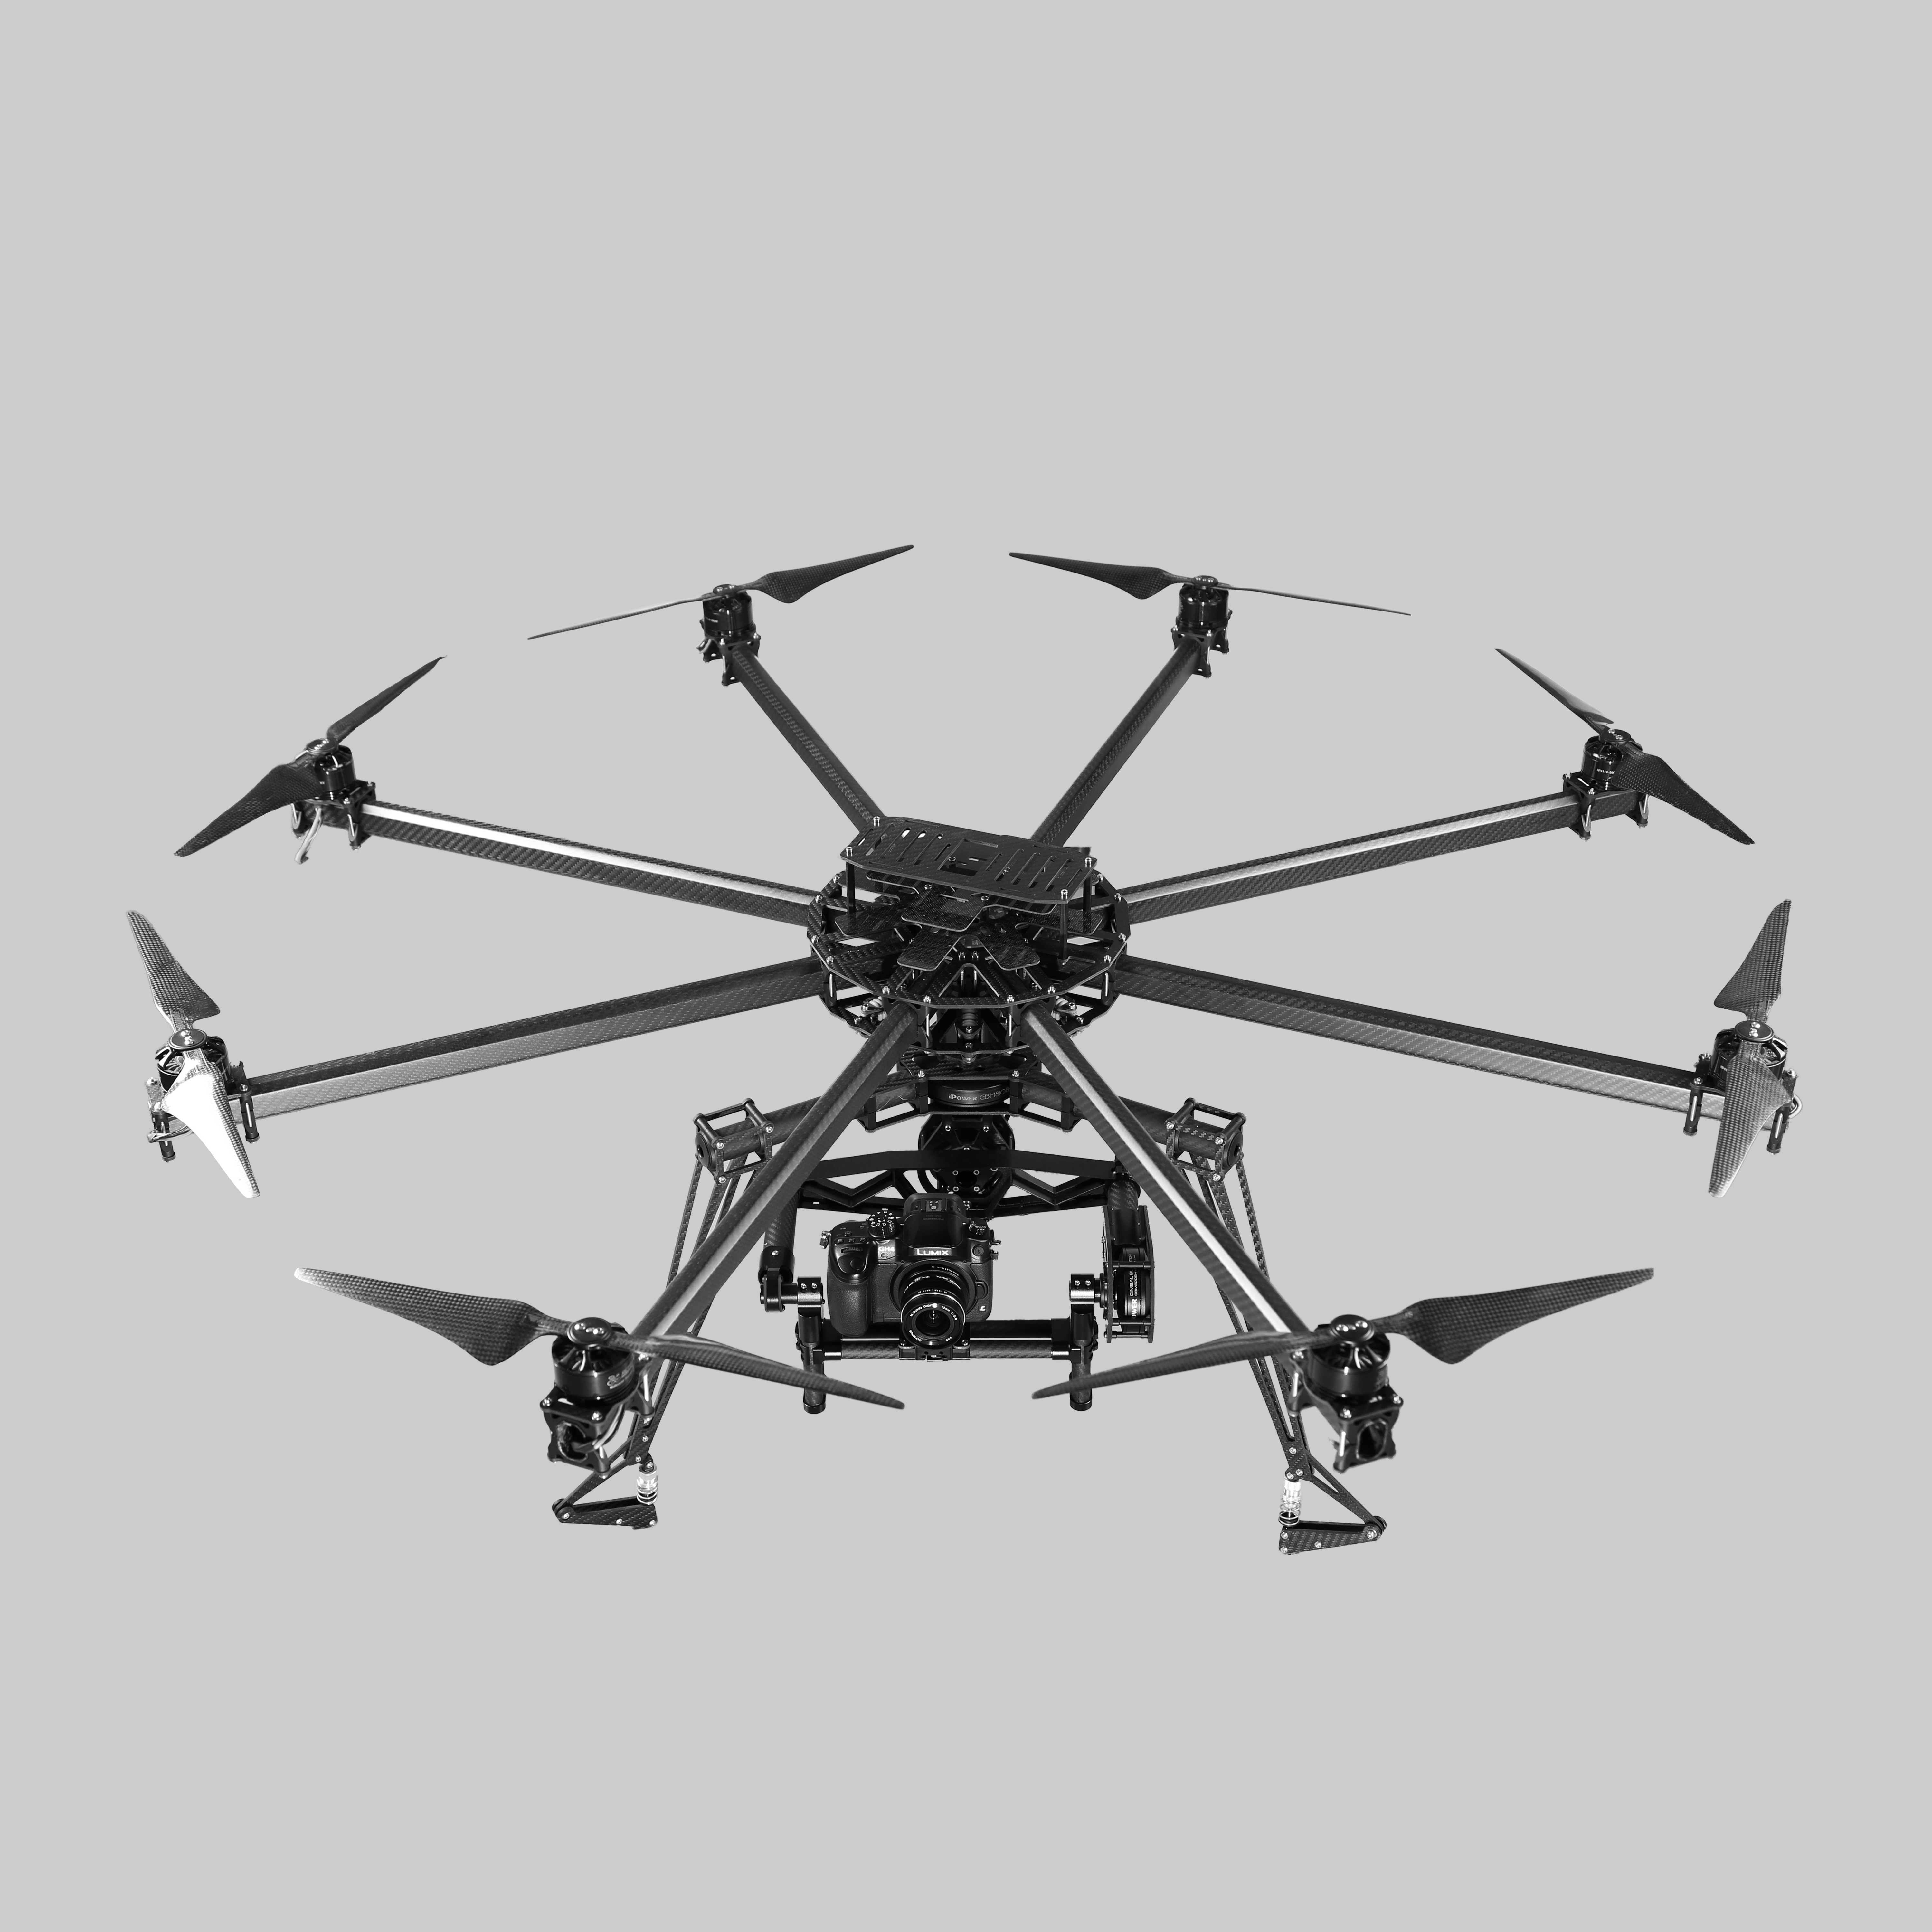 Octocopter RC Multicopter fpv professional CineStar system